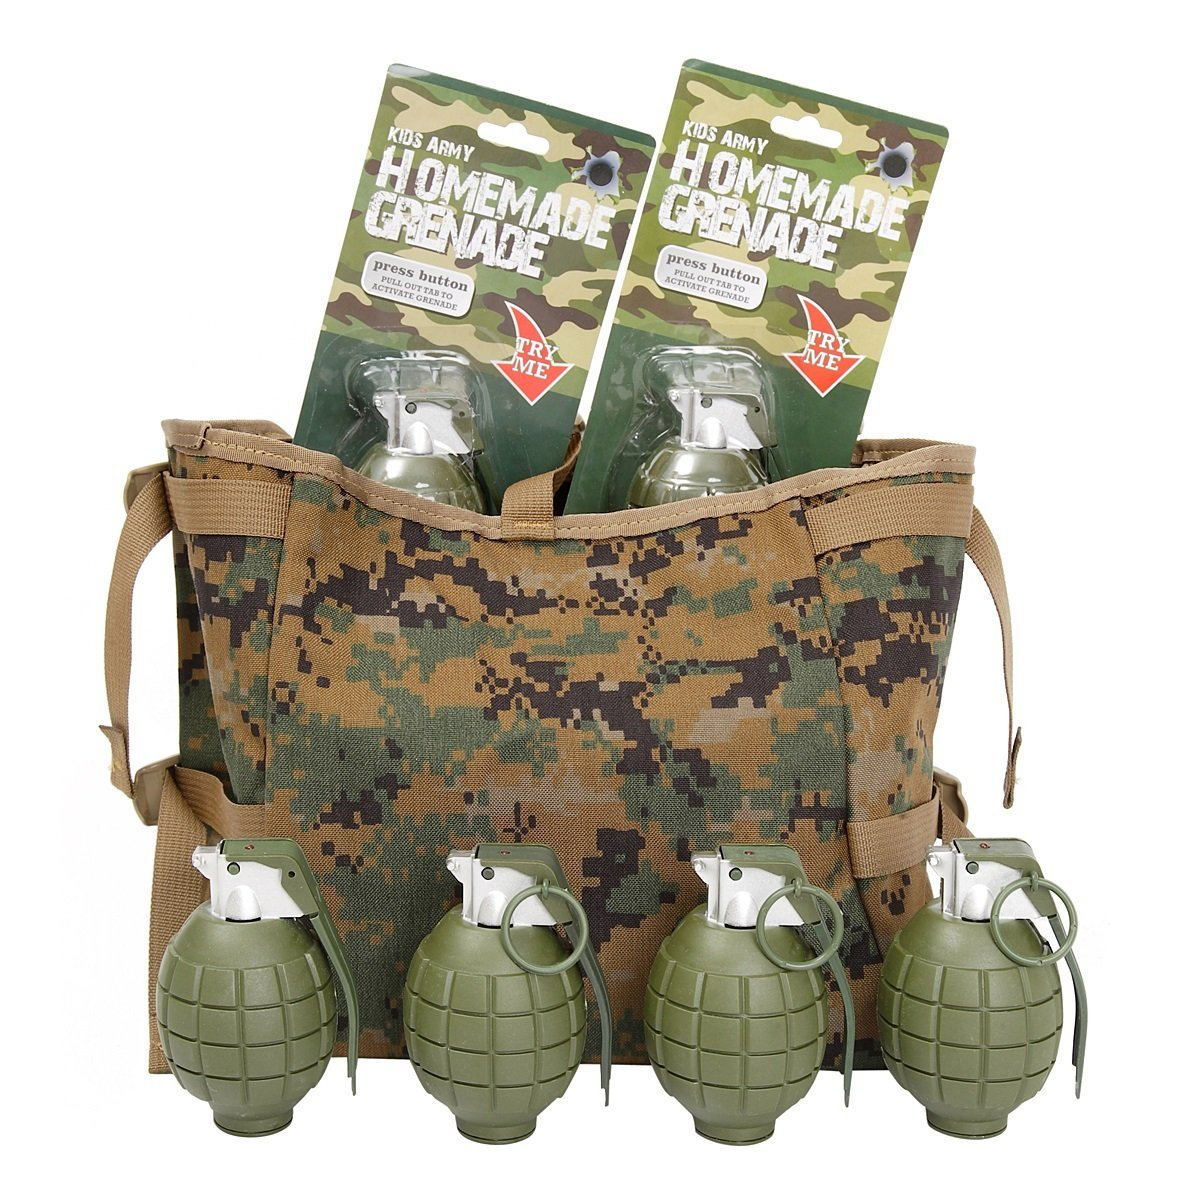 Kids Army Grenade Ammo Bag - Includes 6 Toy Hand Grenades